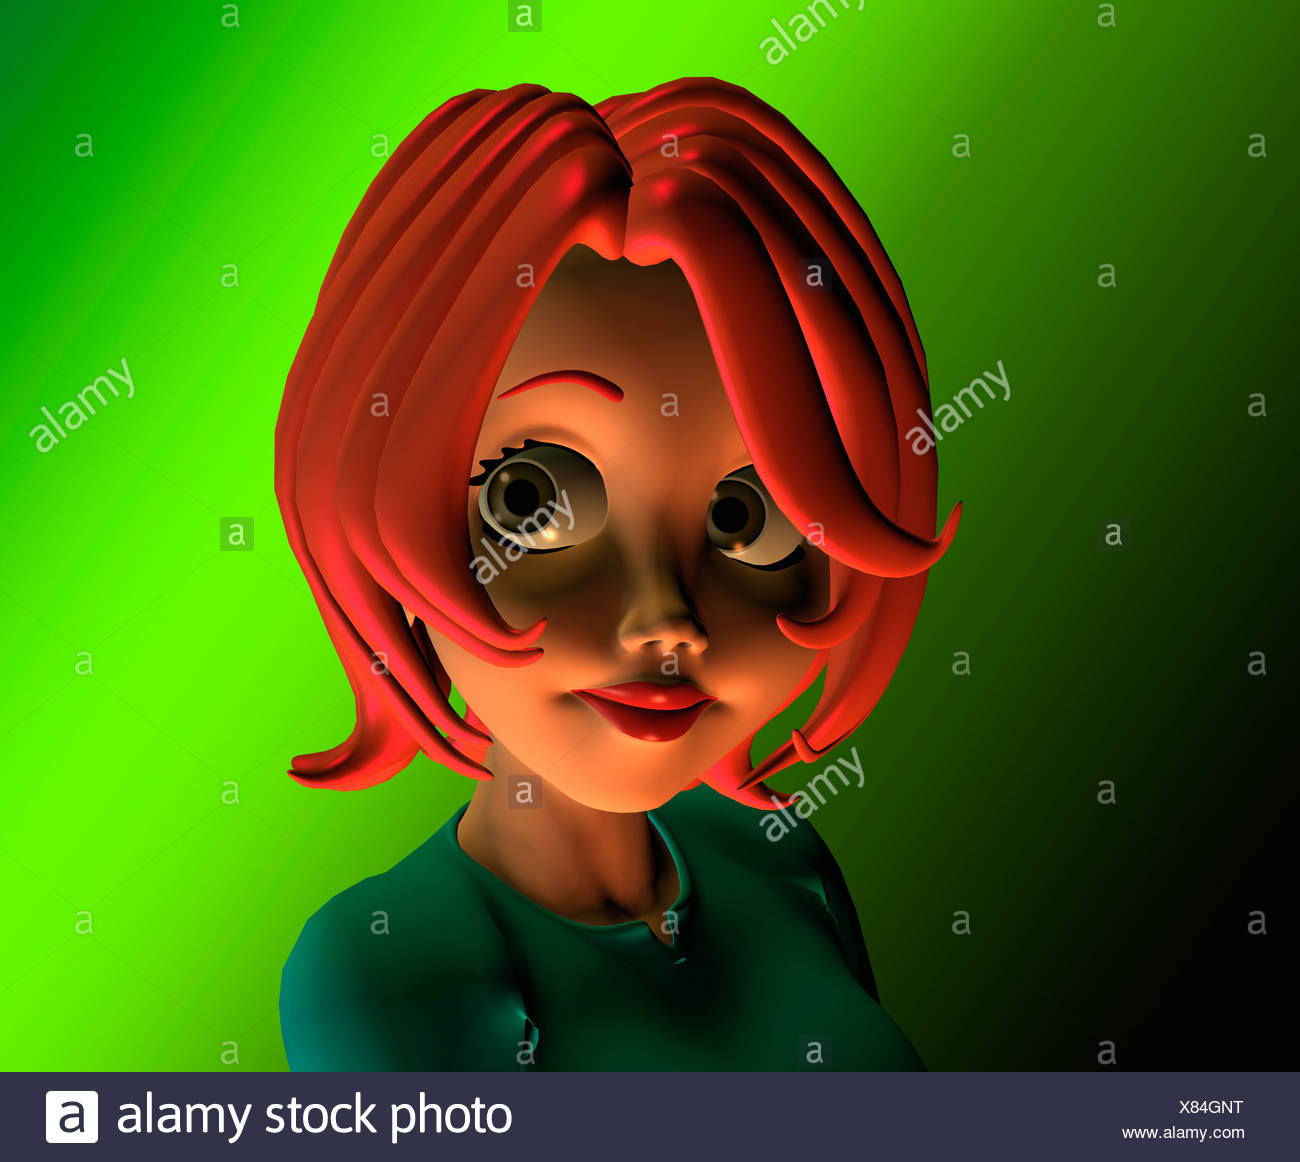 Cartoon Image Of Young Girl Smiling - Stock Image